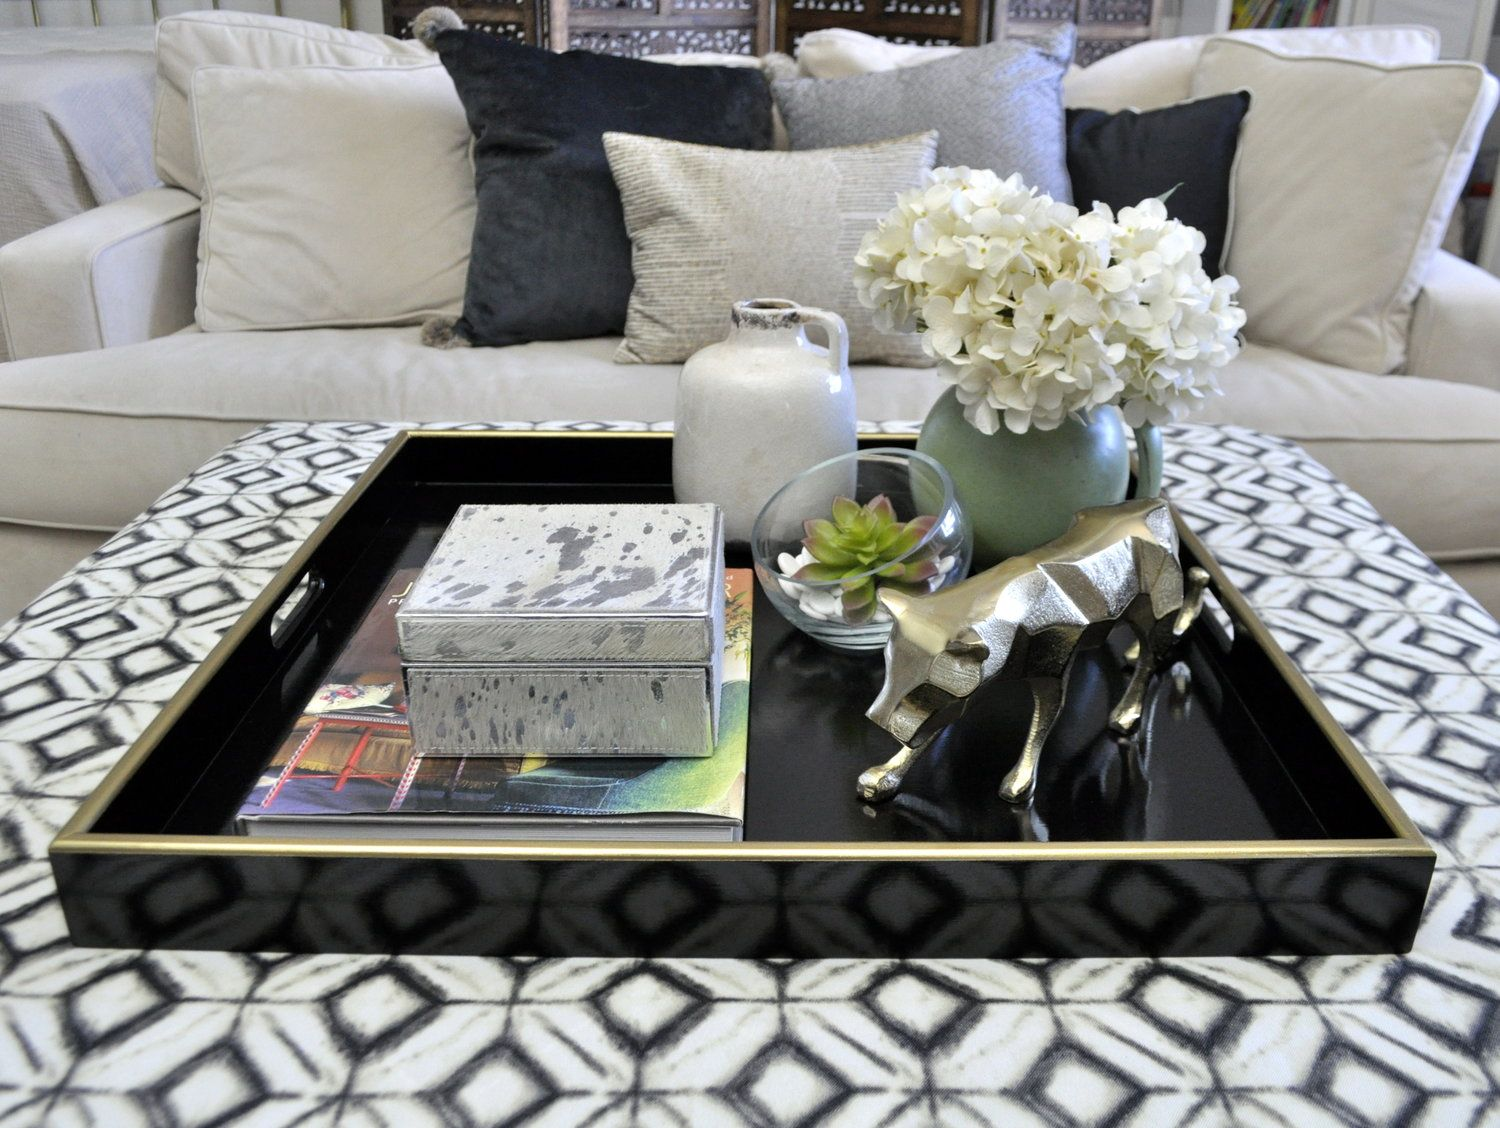 Shop Trays Love It Up Decor Square Coffee Table Decor Ottoman Coffee Table Decor Decorating Coffee Tables [ 1128 x 1500 Pixel ]